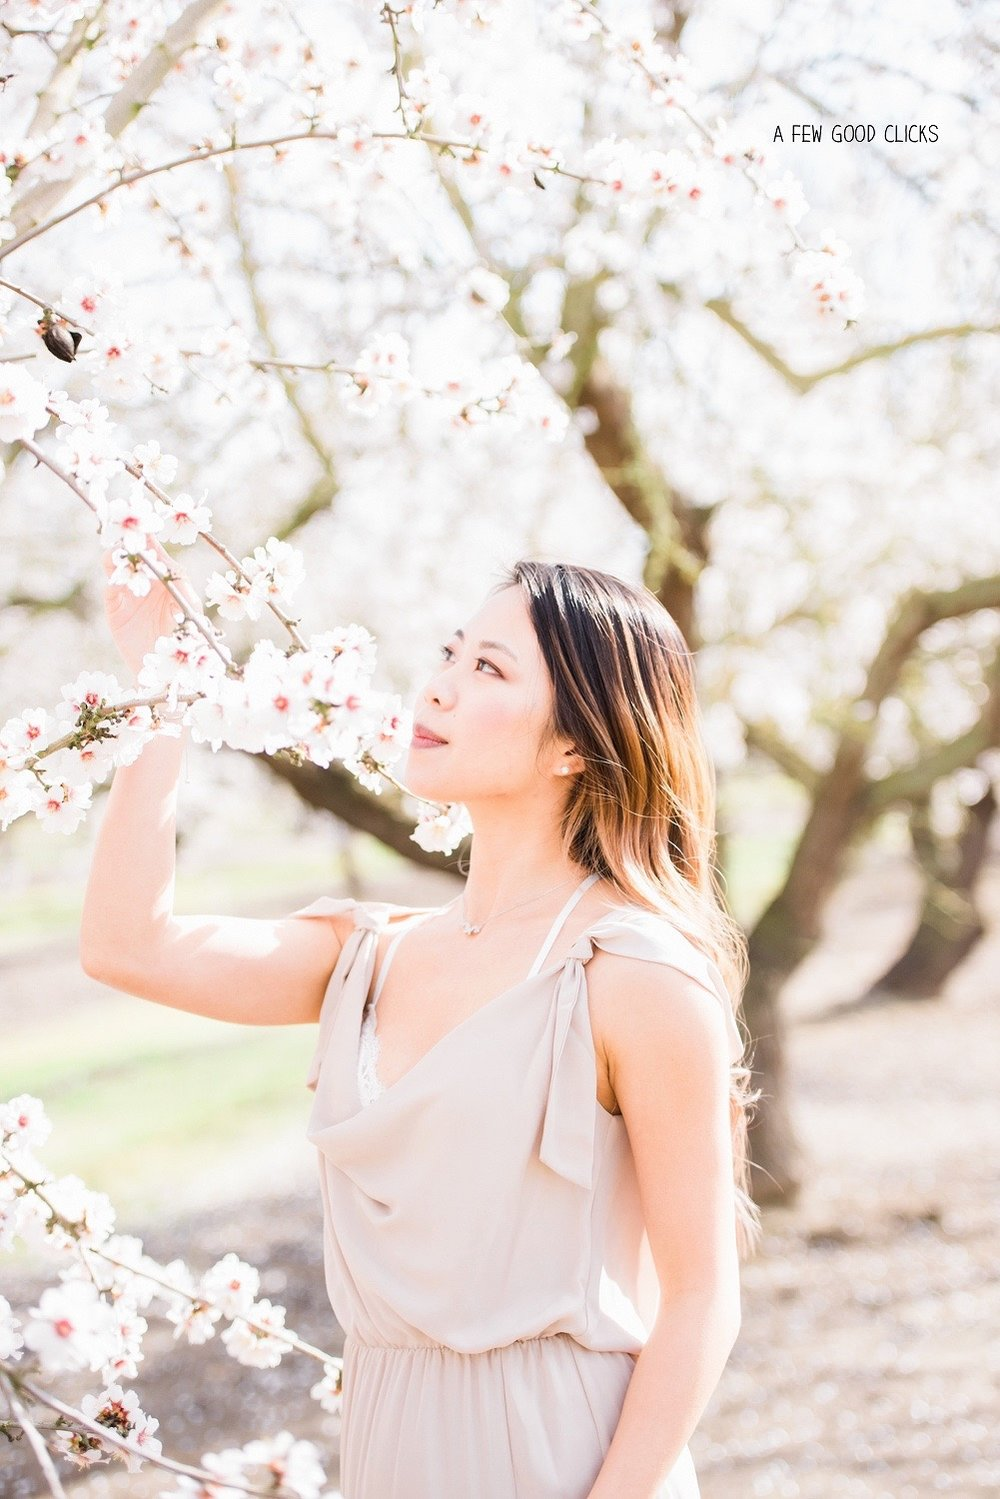 almond-blossom-lifestyle-portrait-photography-by-afewgoodclicks-net-32.jpg